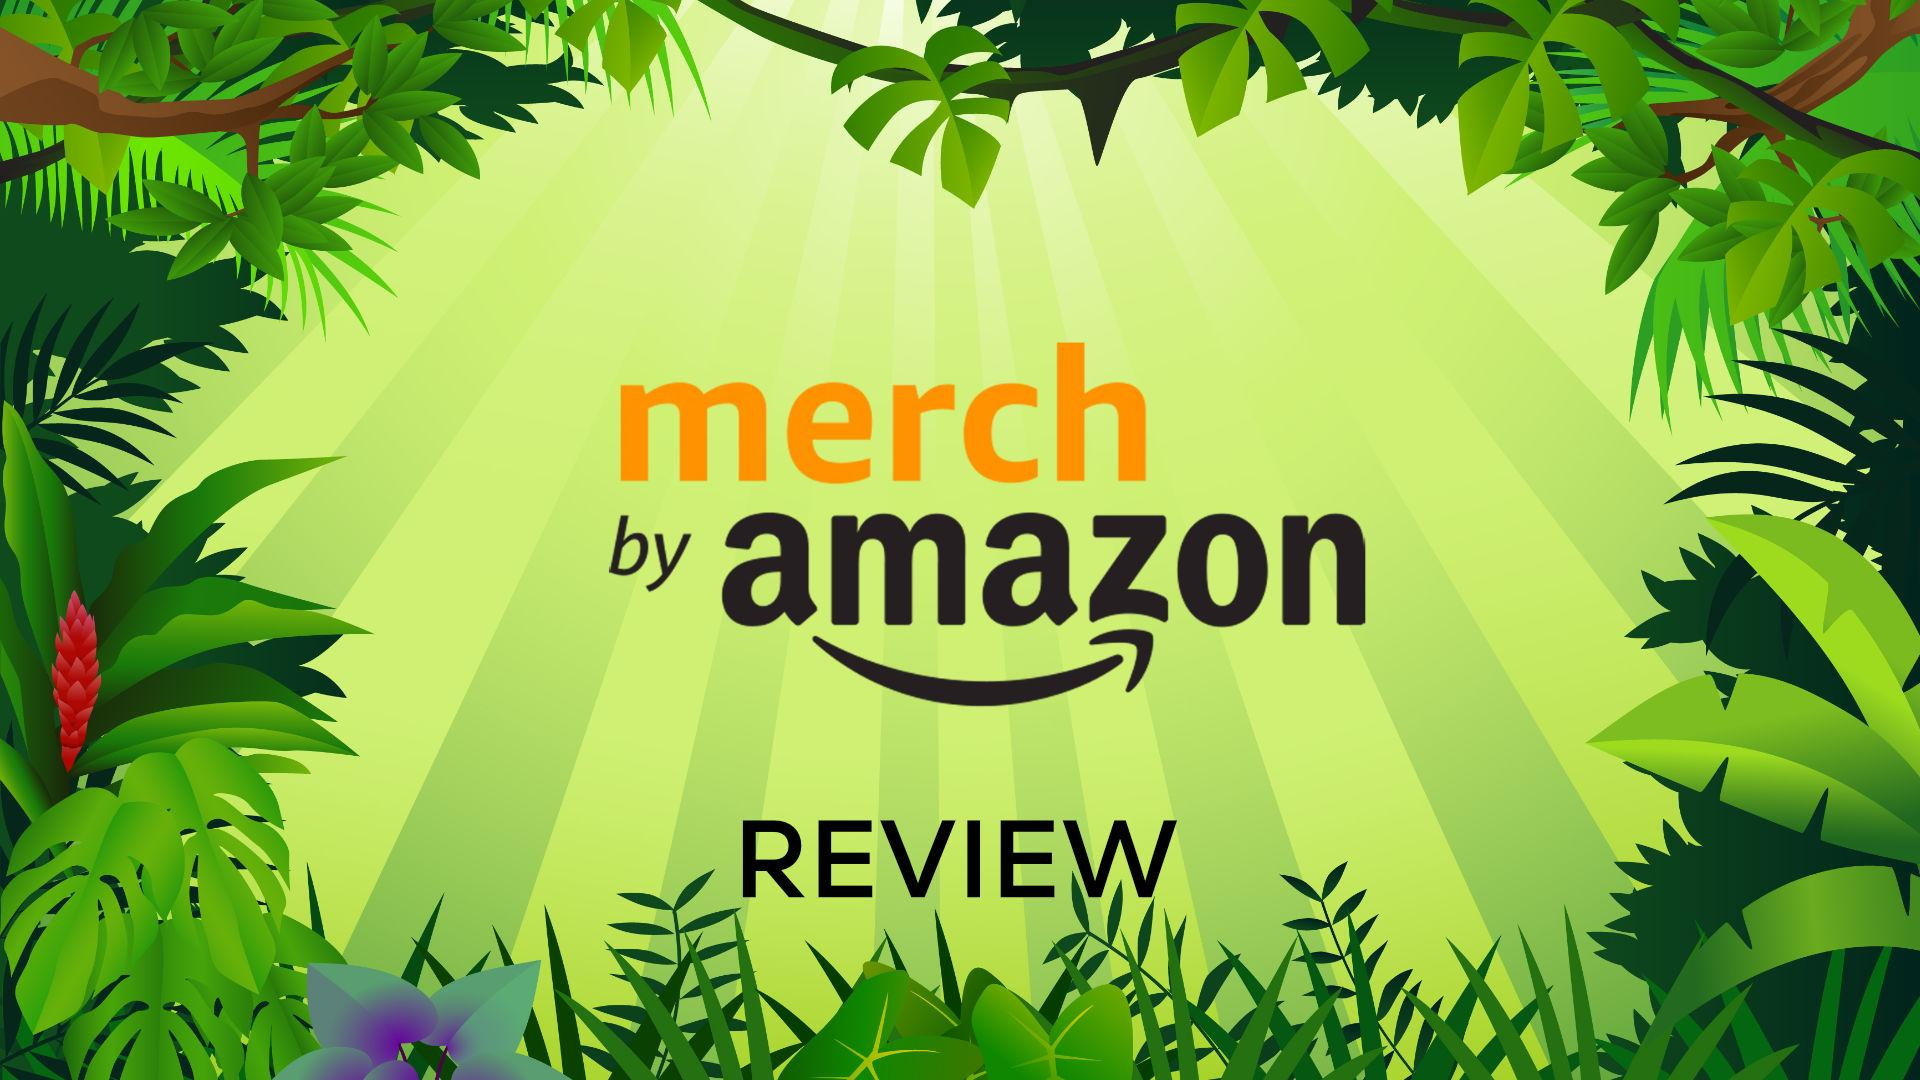 Merch By Amazon: Selling Merch on the Ecommerce Giant